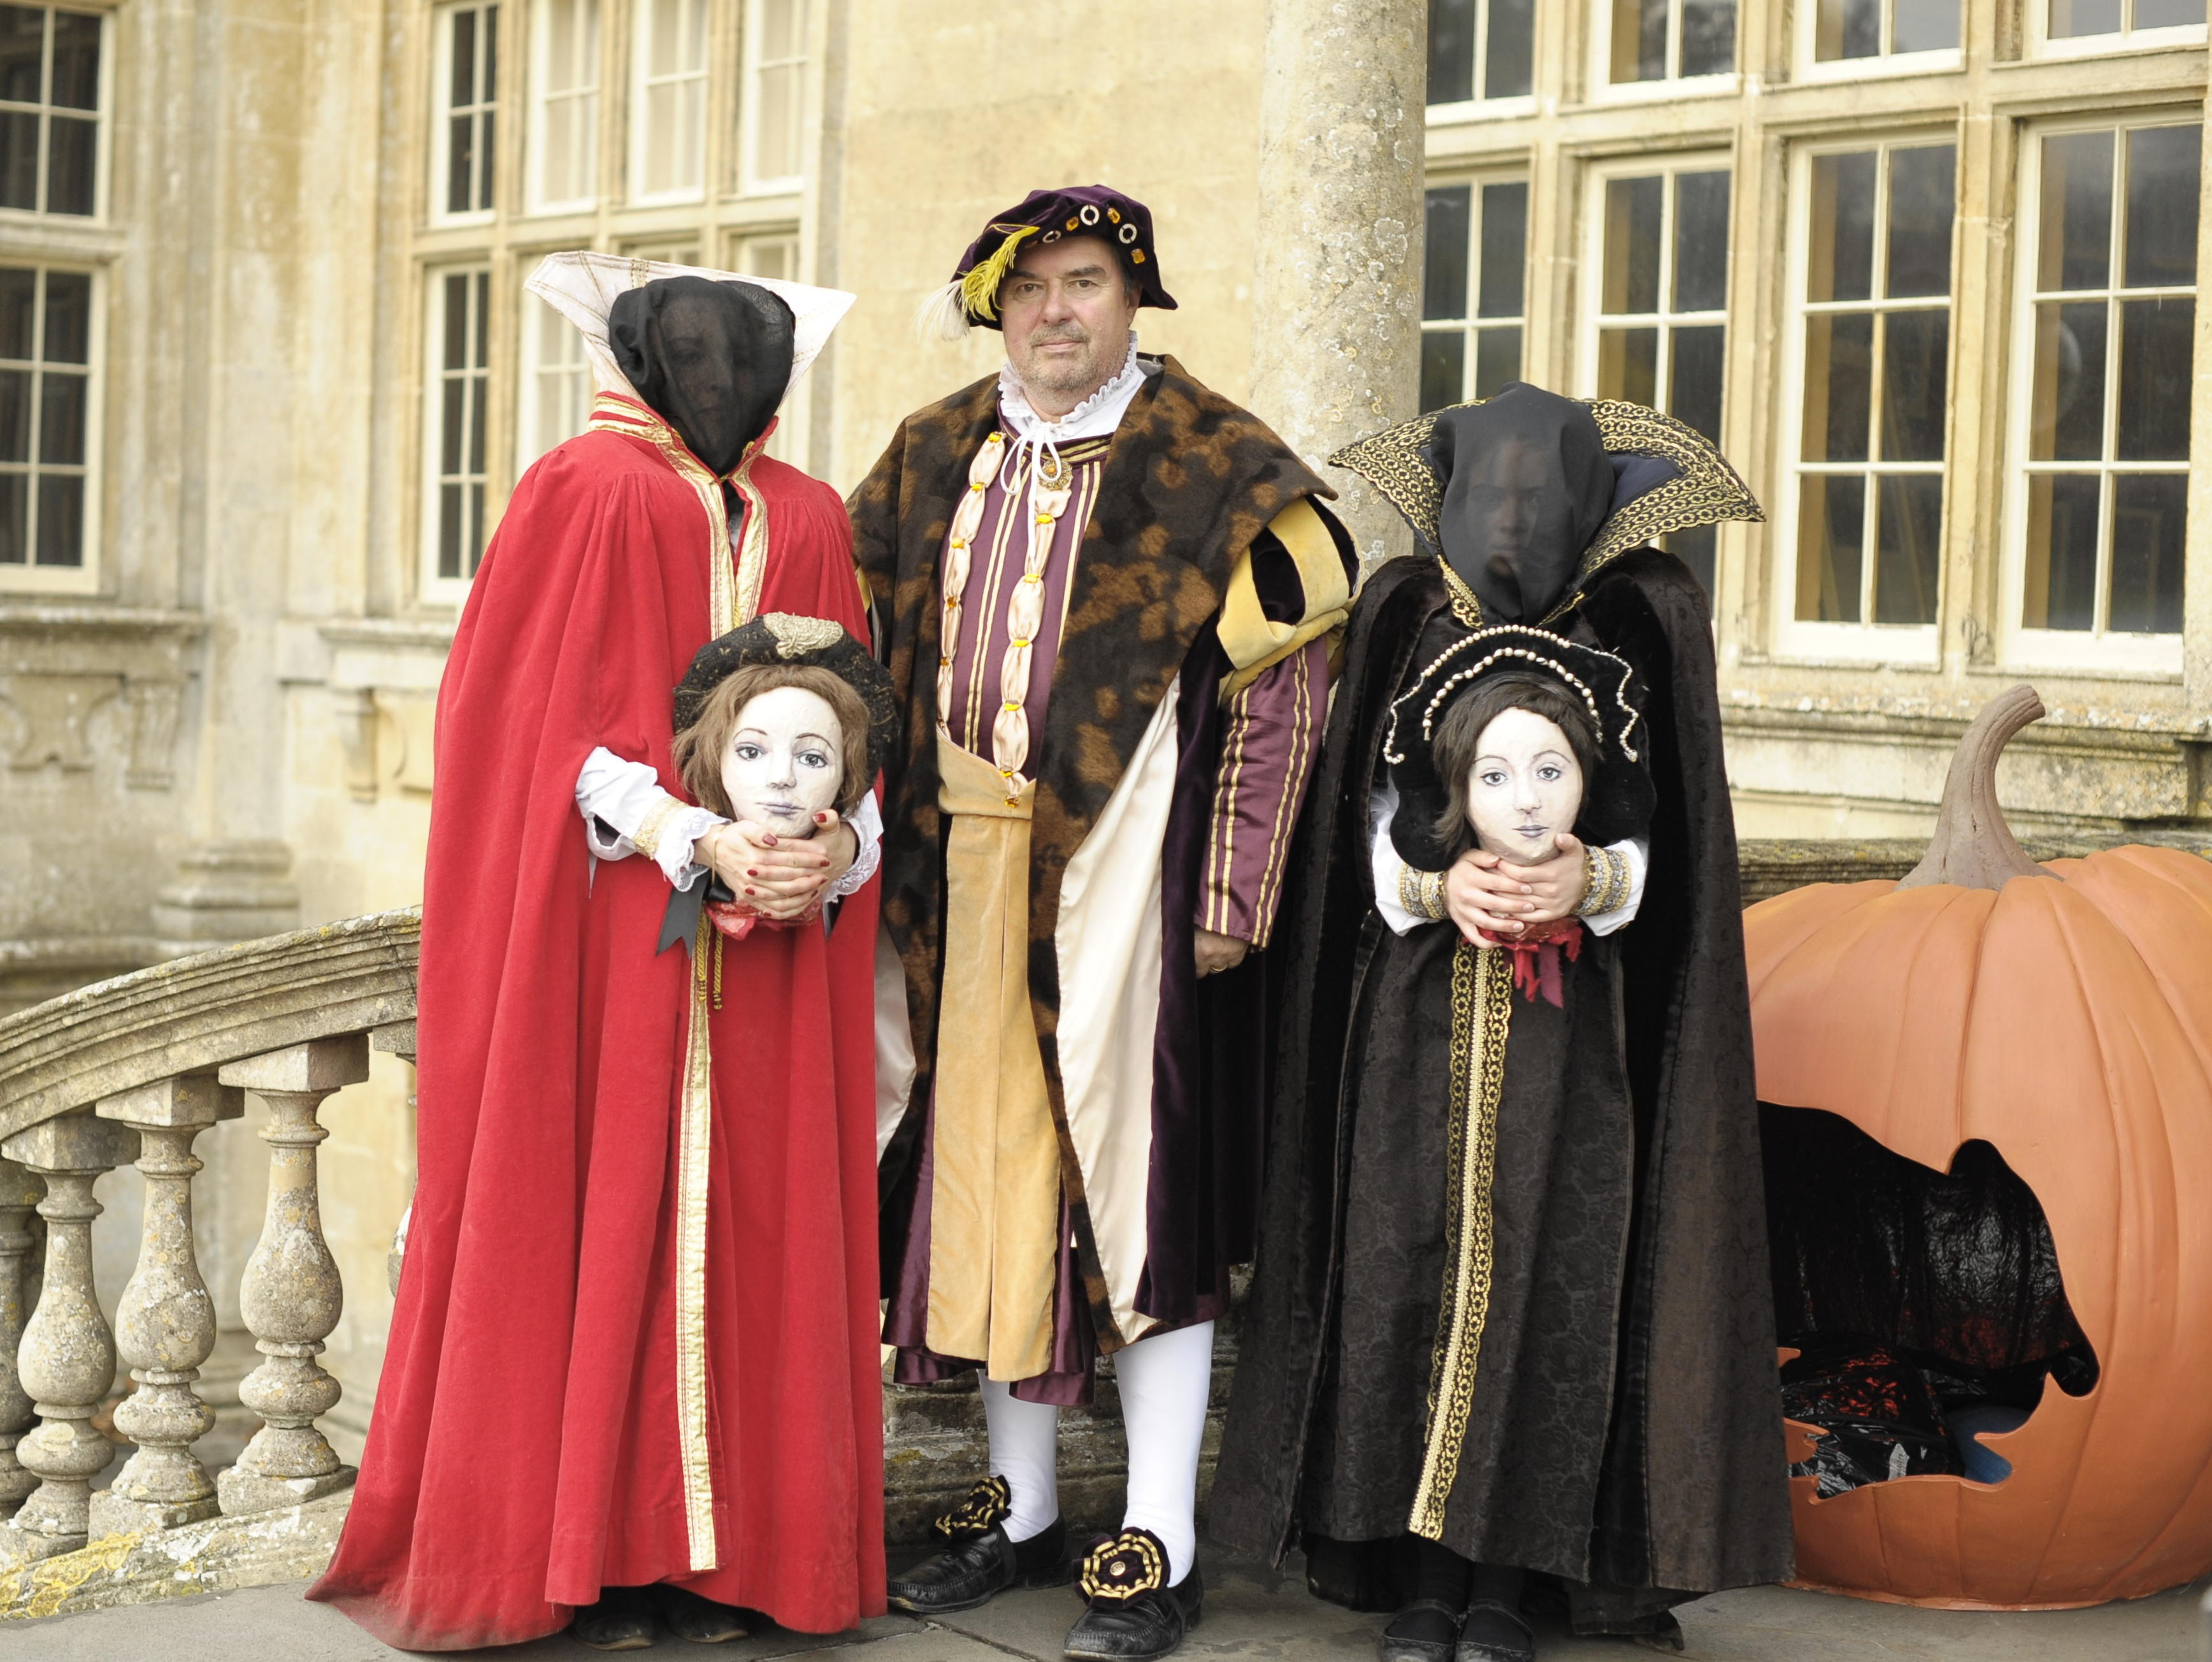 Headless queens and henry VIII.jpg